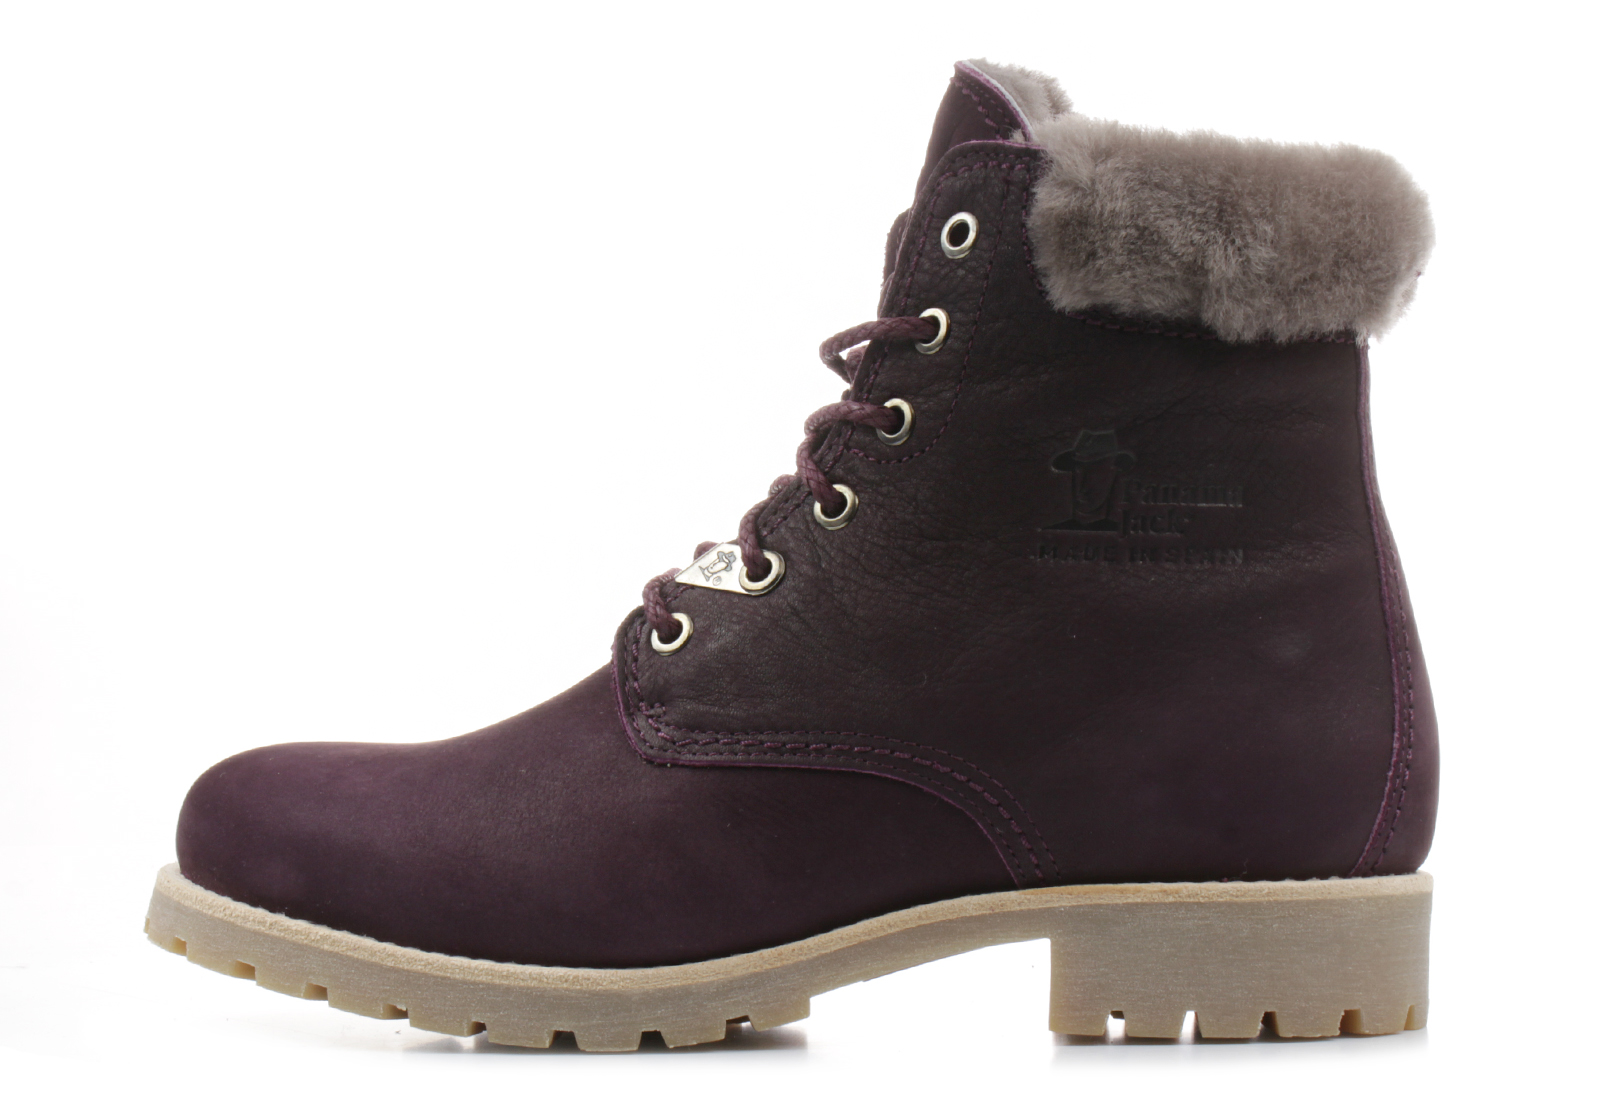 panama jack boots panama 03 igloo panama ig b25 online shop for sneakers shoes and boots. Black Bedroom Furniture Sets. Home Design Ideas